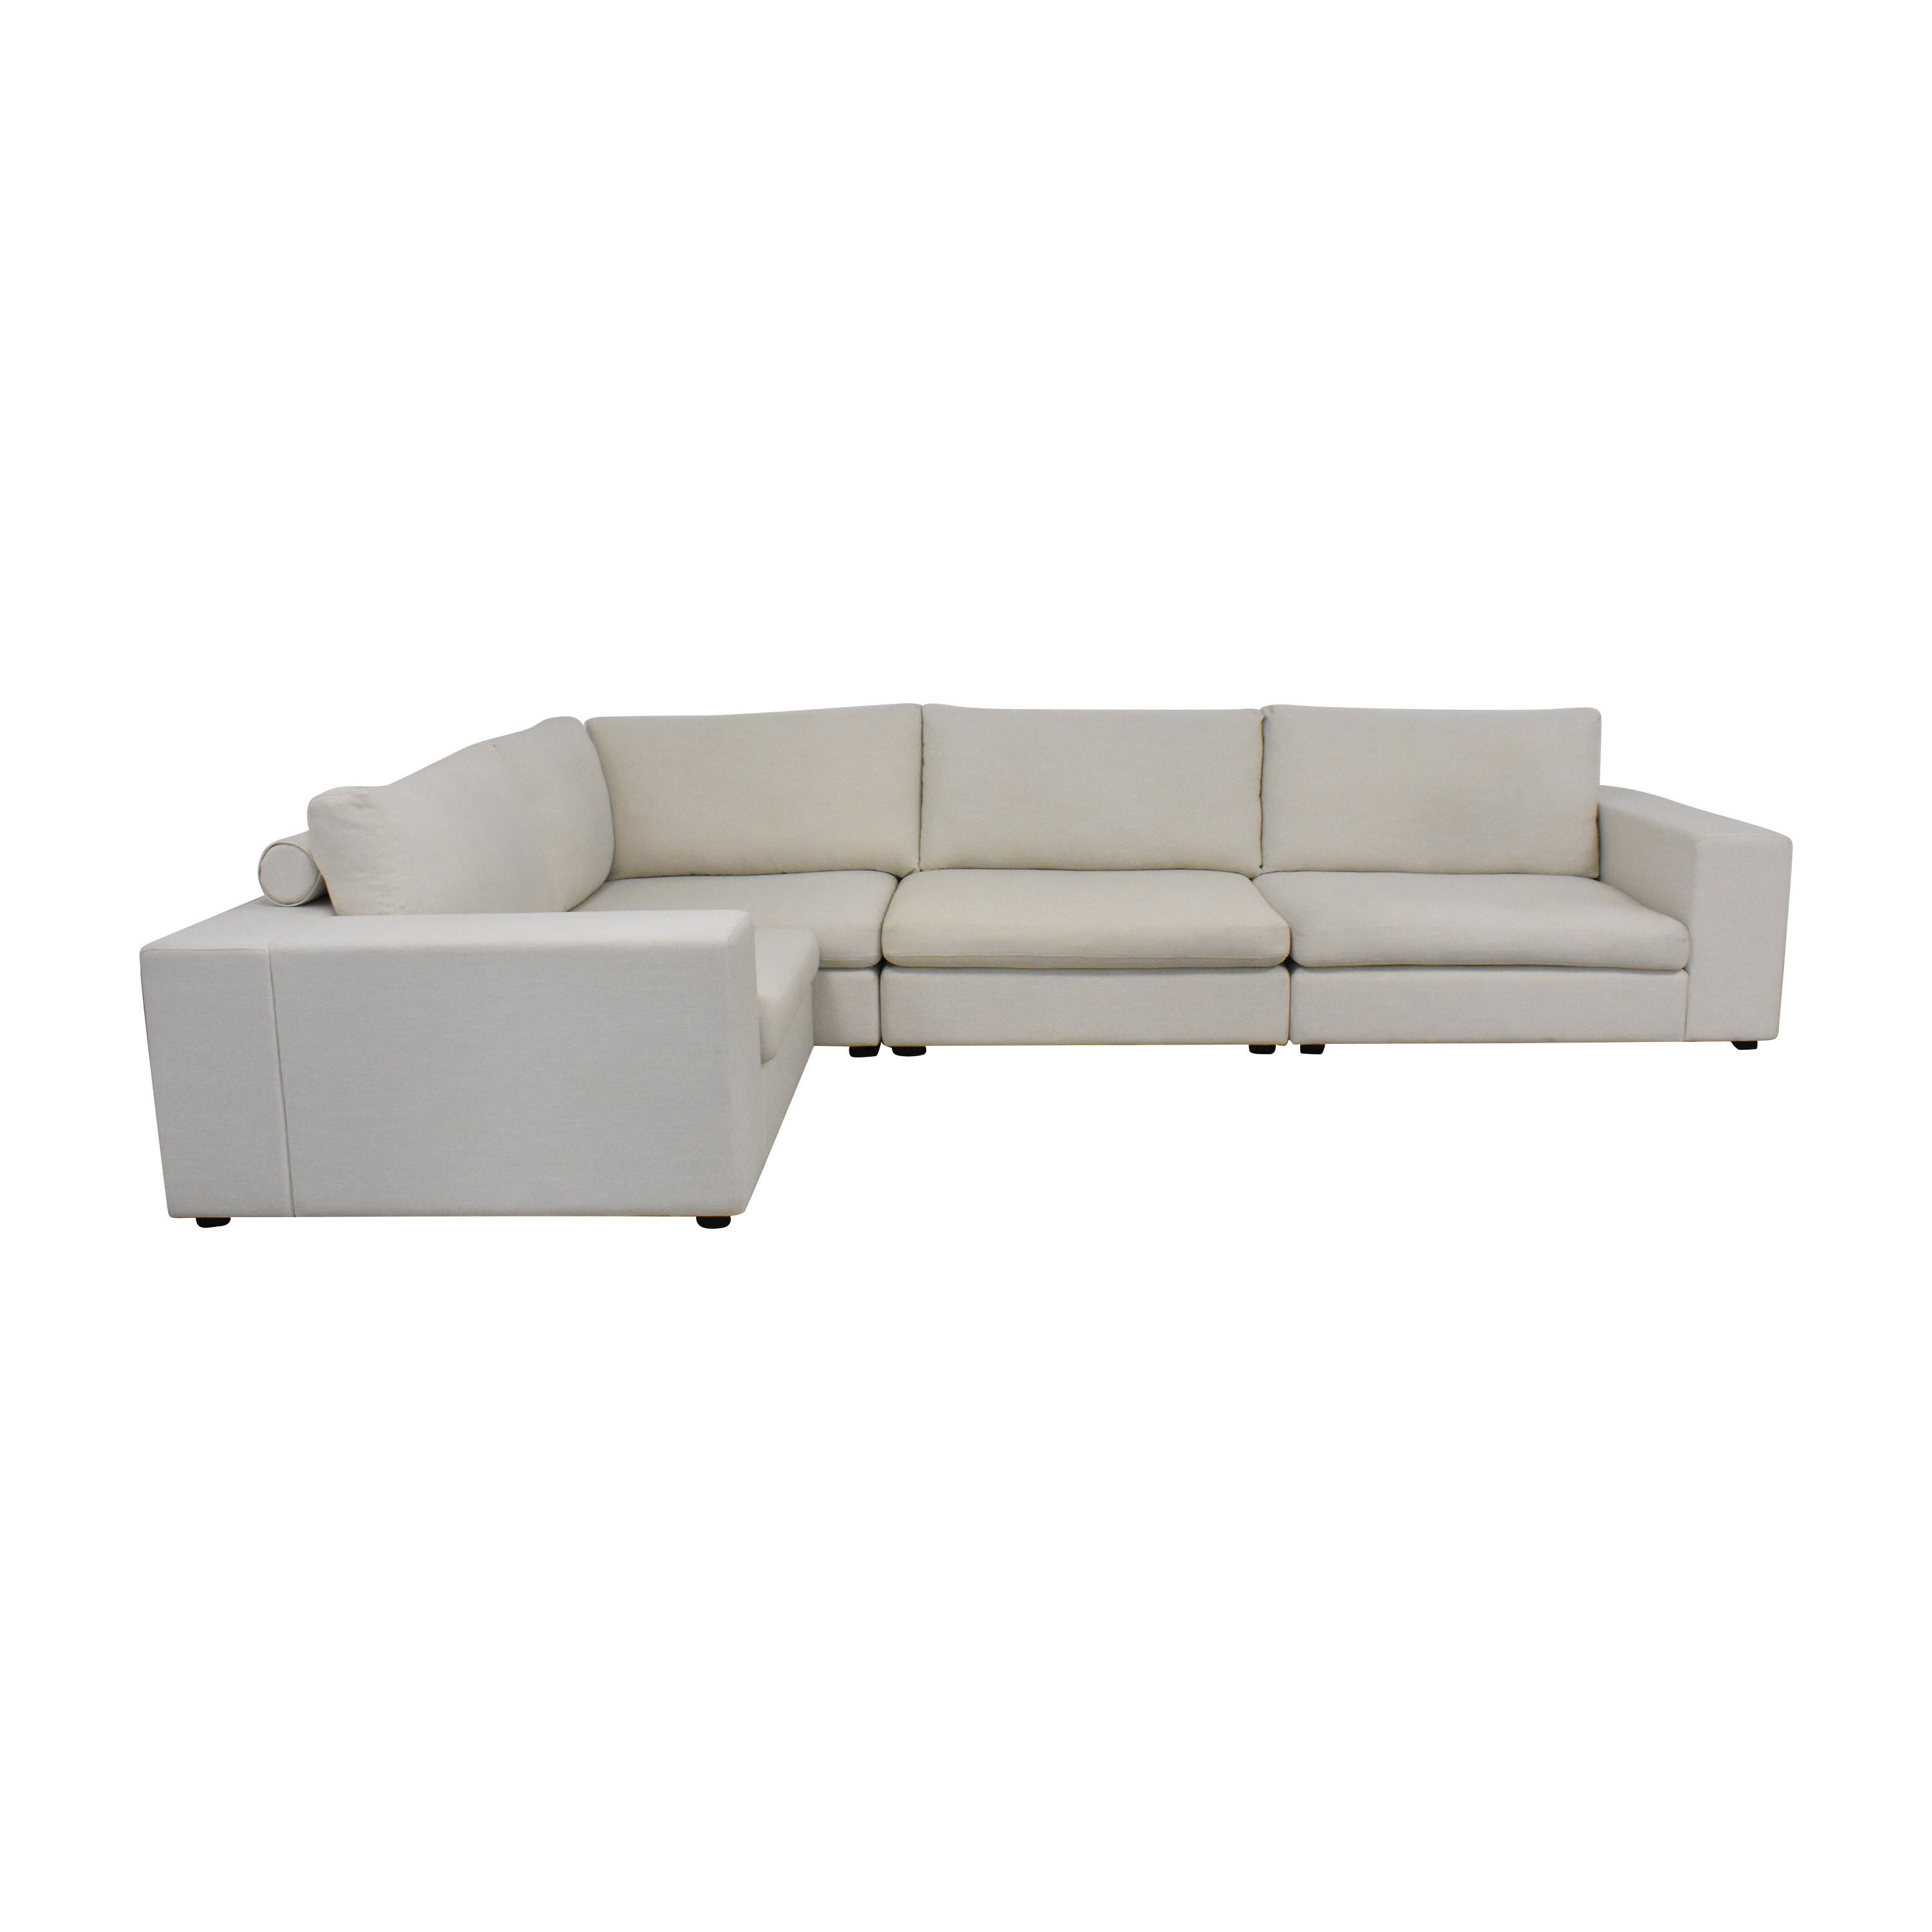 Article Article Beta Sectional Sofa second hand